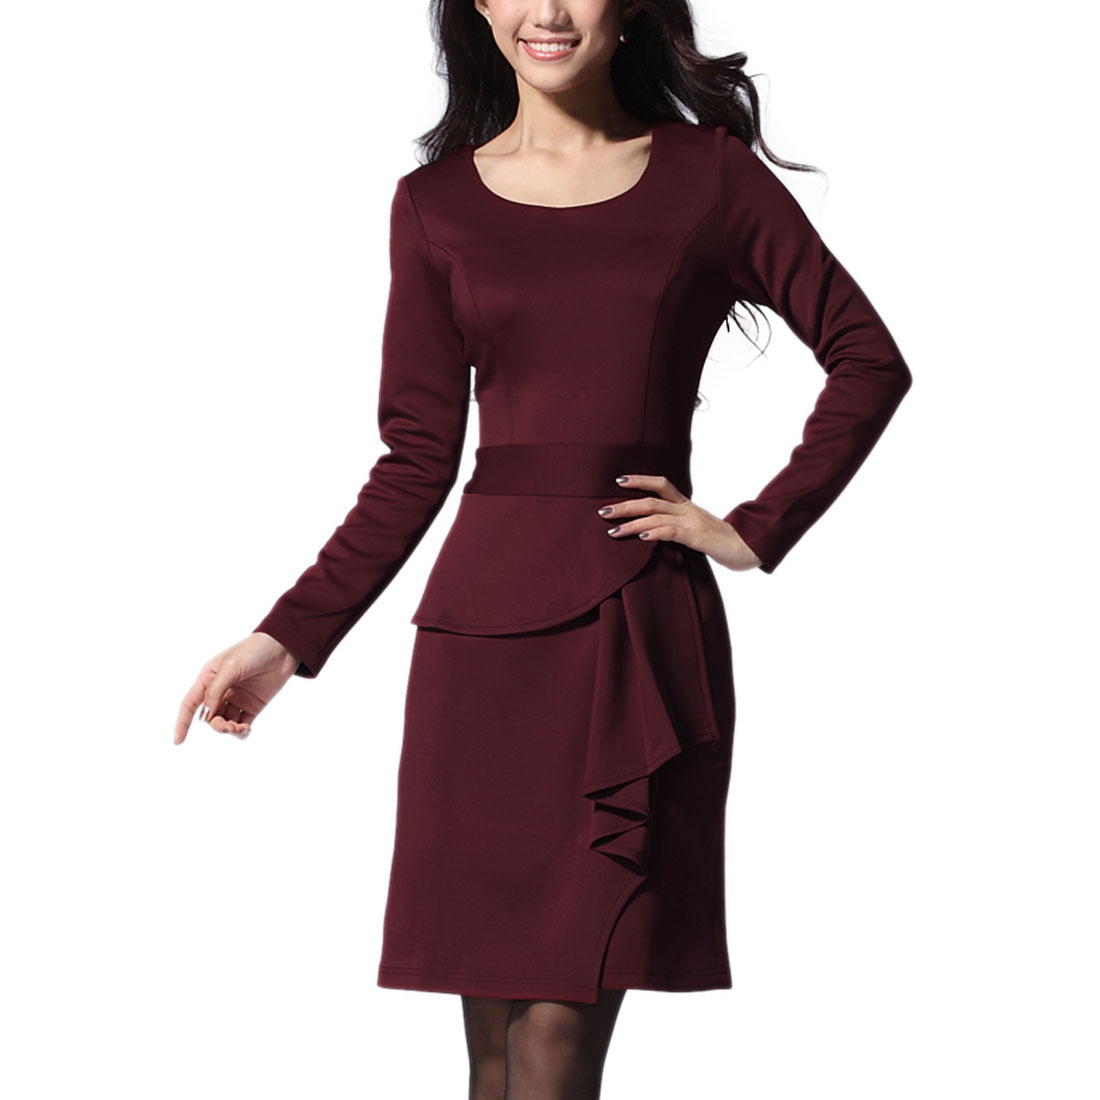 Women Long Sleeves Round Neck Ruffle Decor Dress Red S